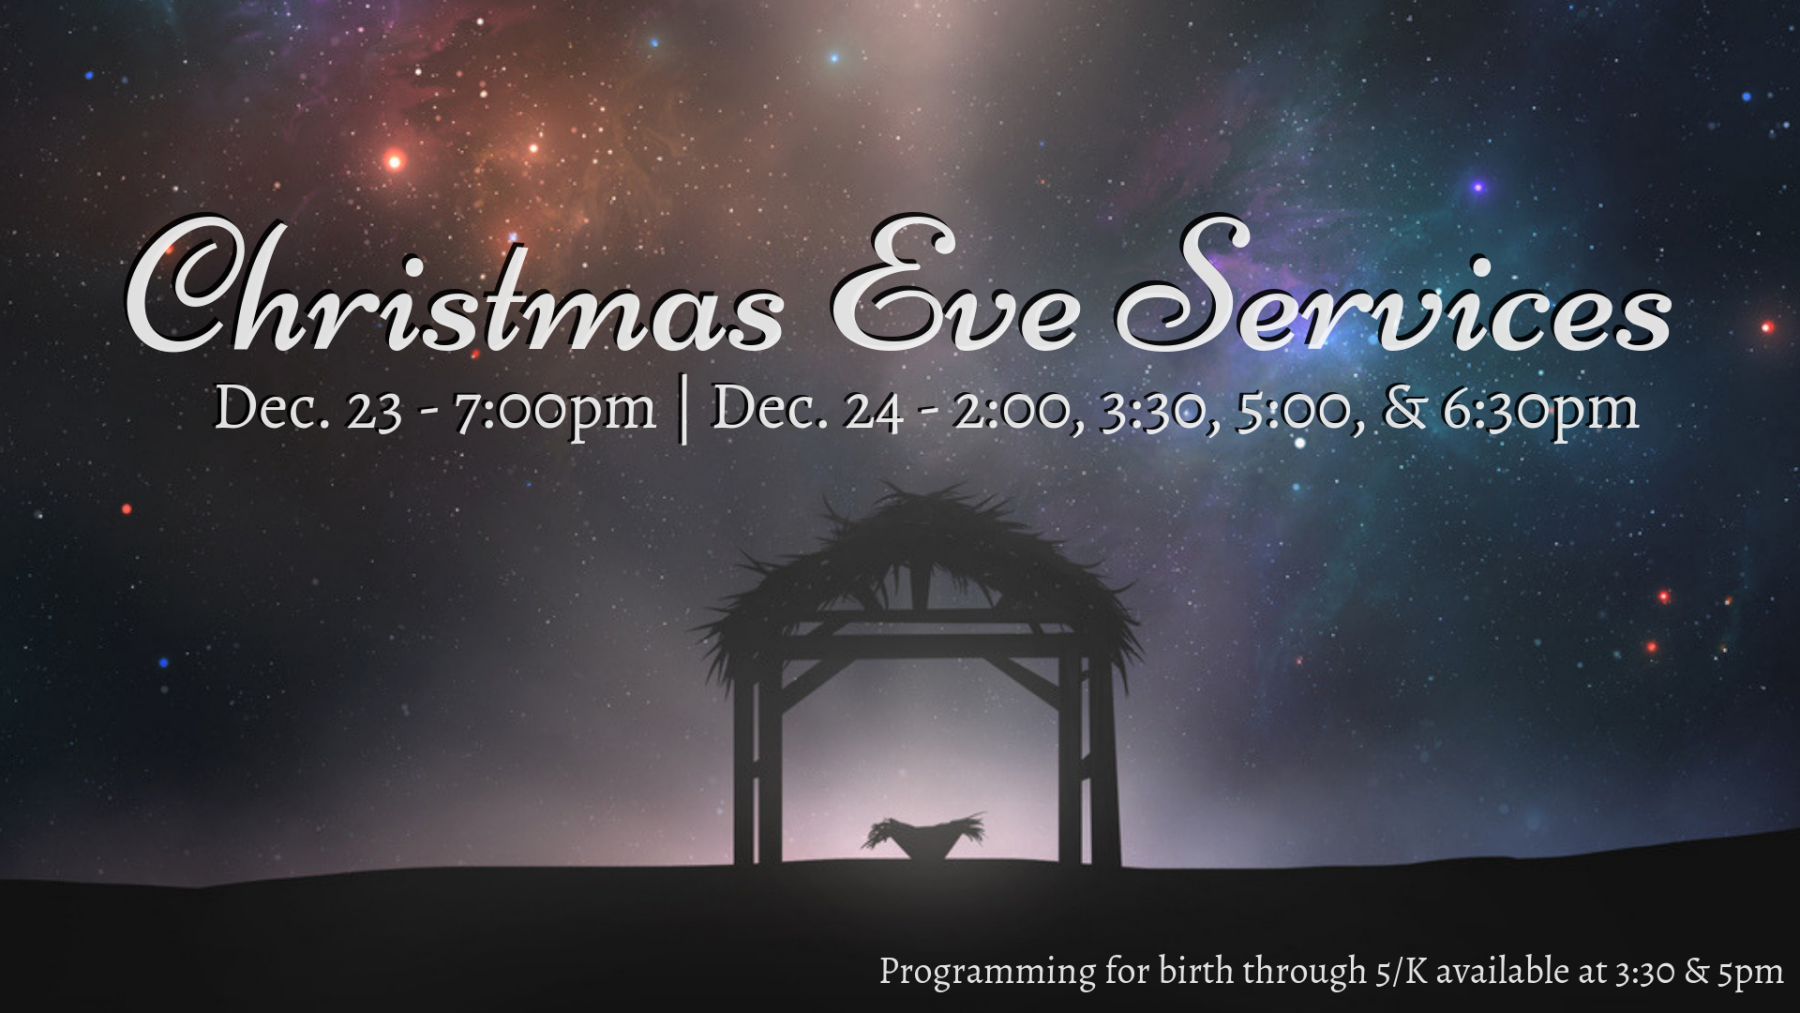 Christmas Eve Services.Christmas Eve Services Dec 23 7 00pm Dec 24 2 00 3